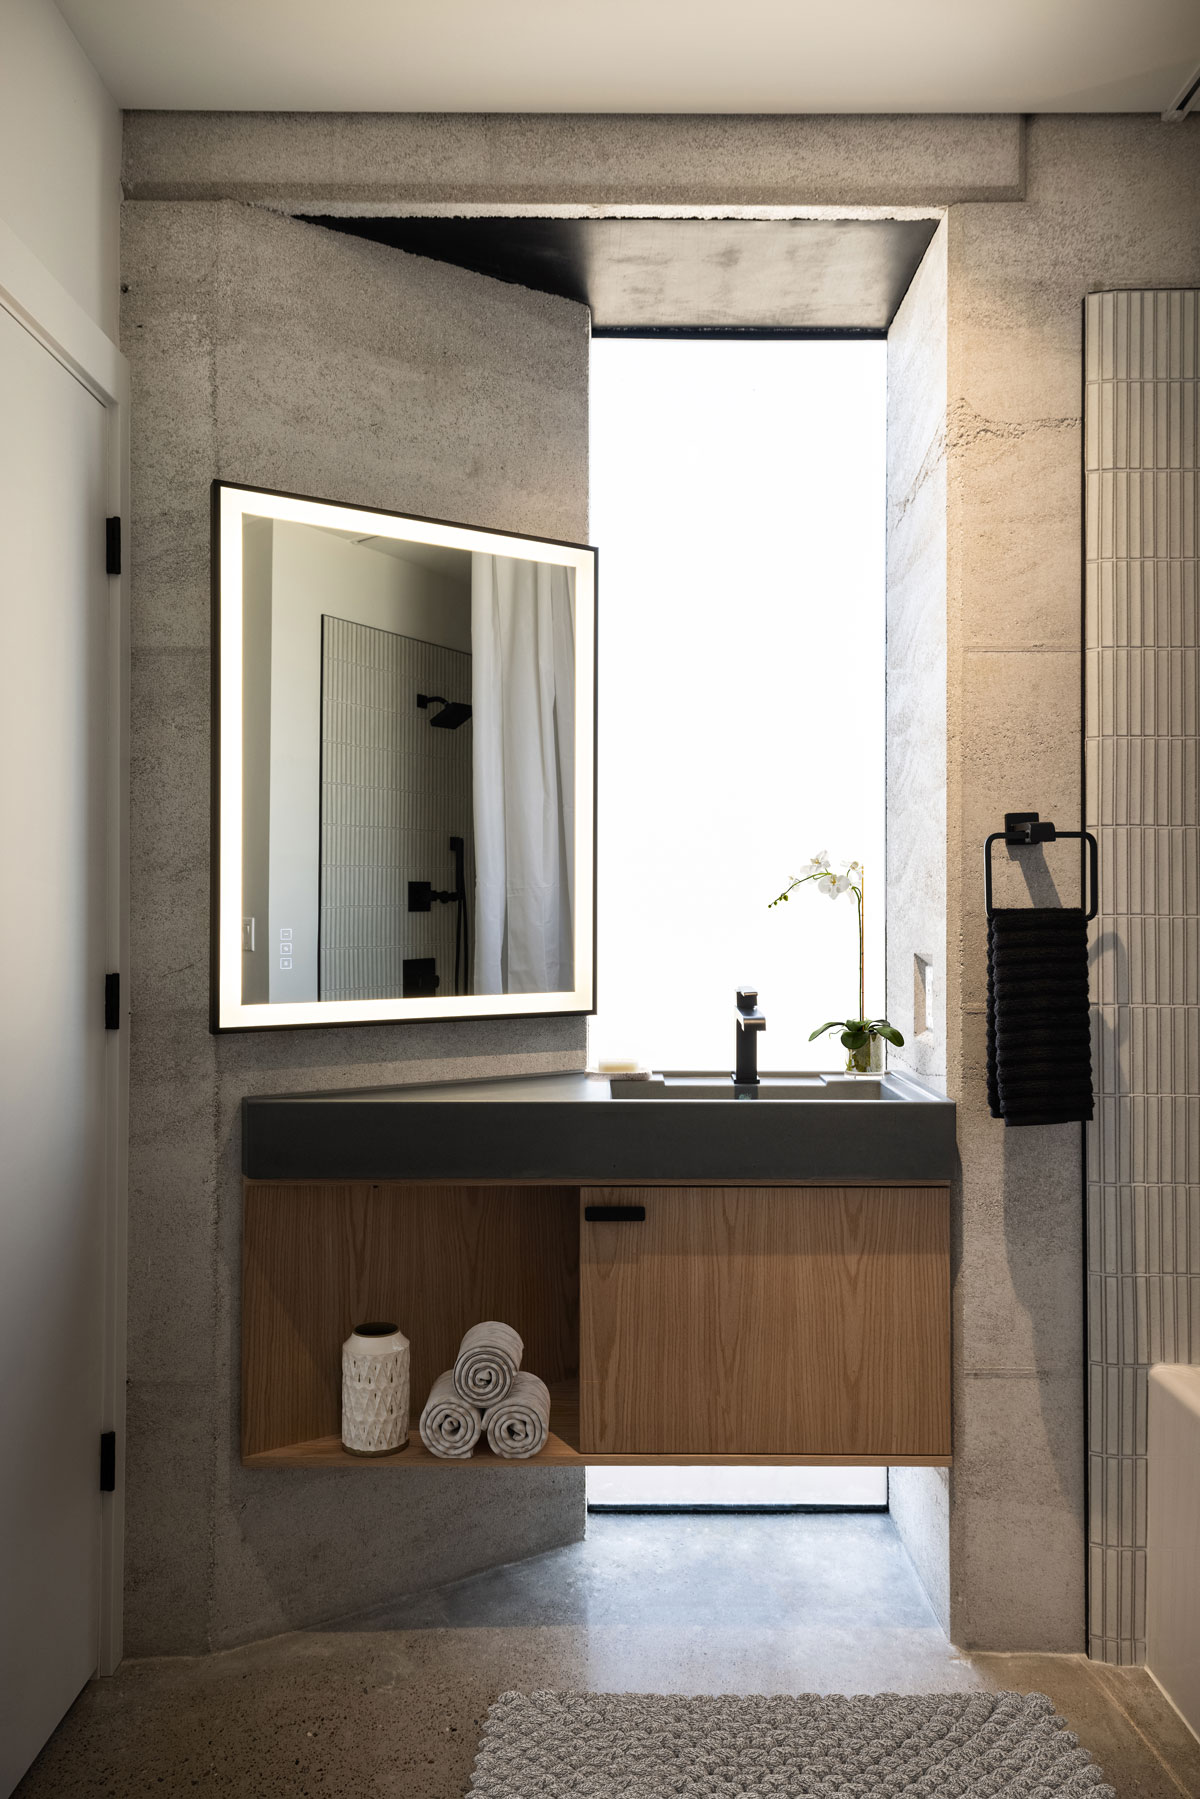 This floating custom concrete sink rests on a handcrafted modern oak cabinet in this rammed earth bathroom